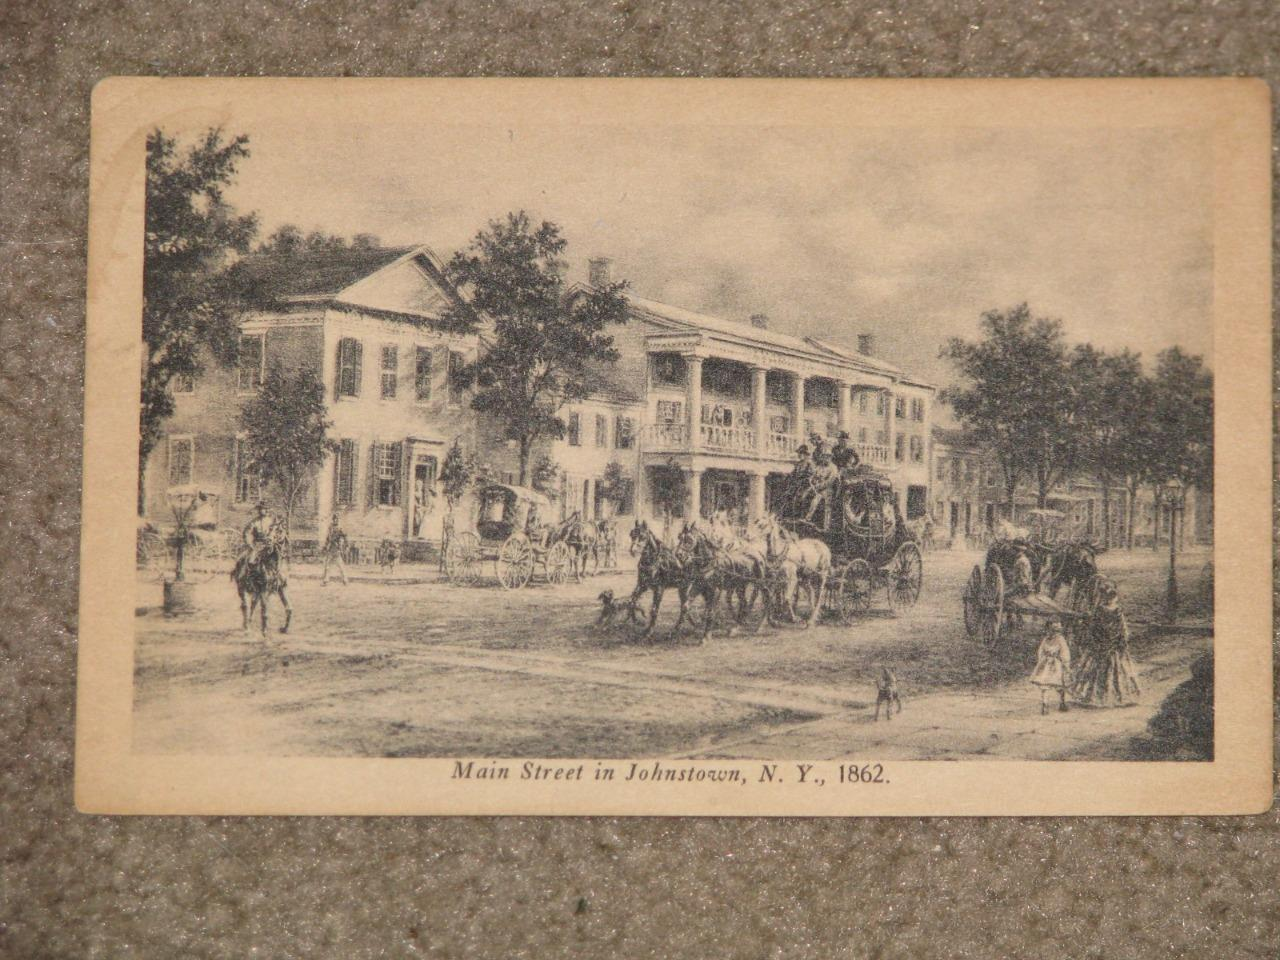 Main St. in Johnstown, N.Y., 1862, unused-vintage card, Publ. by Smith & Lathers